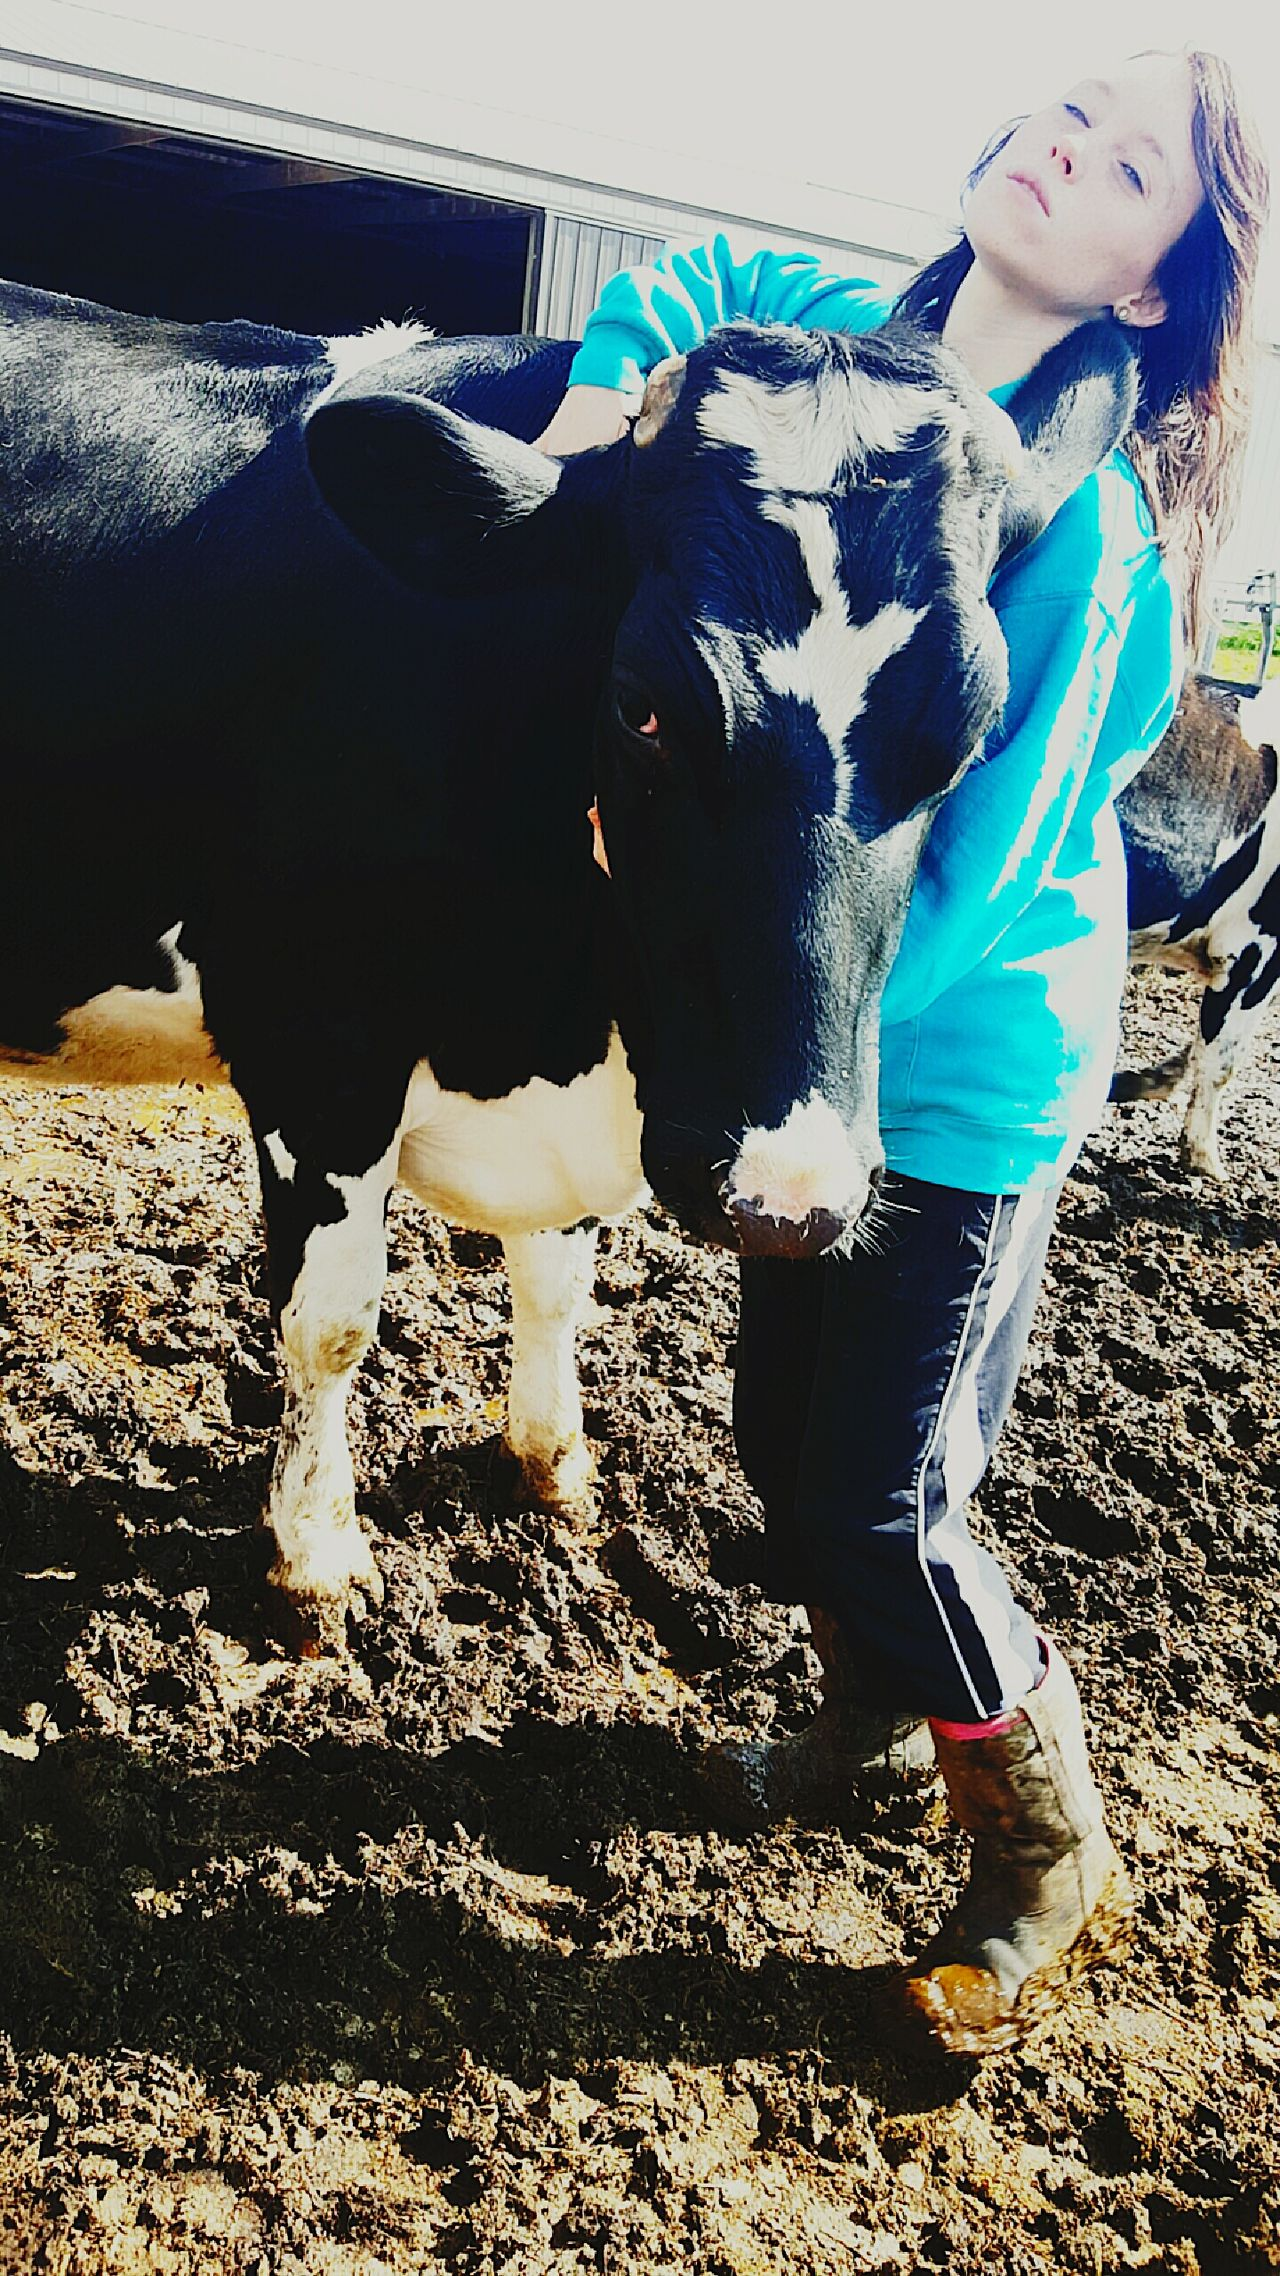 Hard workers and the little heifers of the farm. Agriculture